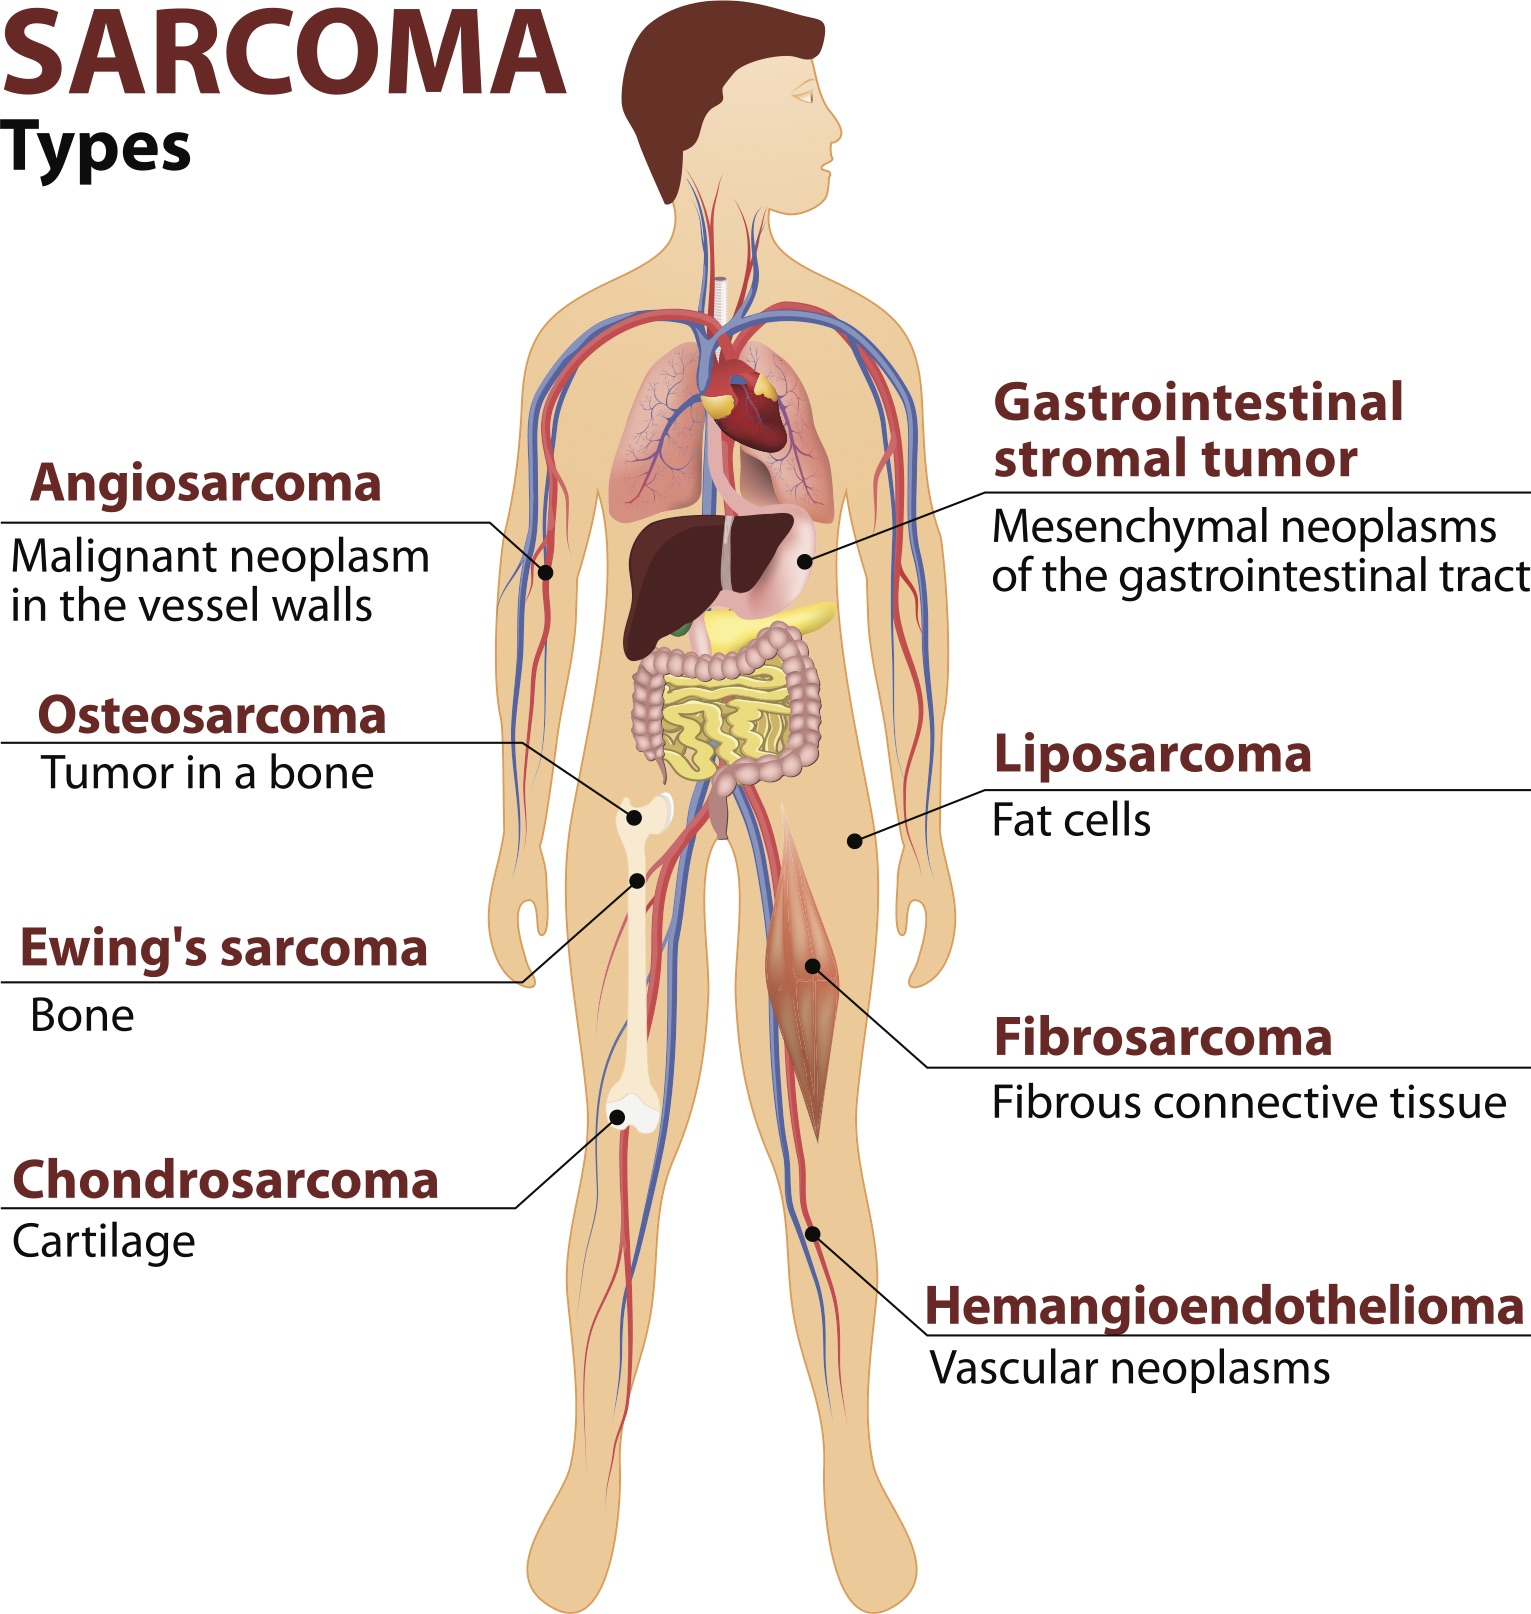 image of a body outlining different parts of the body where sarcoma attacks